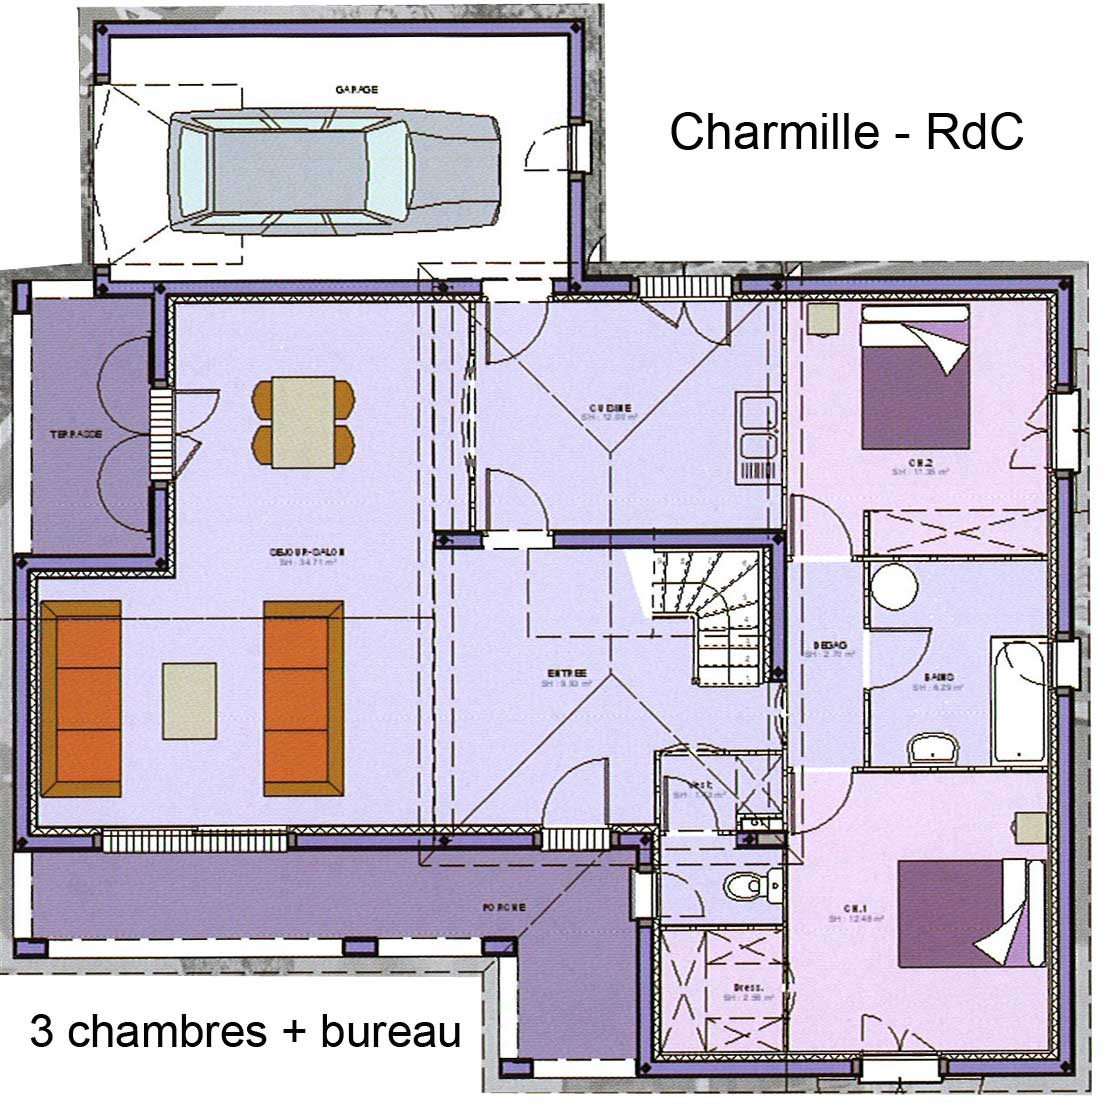 Plan lectricit maison distribution de l 39 alimentation for Plan de maison 2 chambres salon cuisine douche